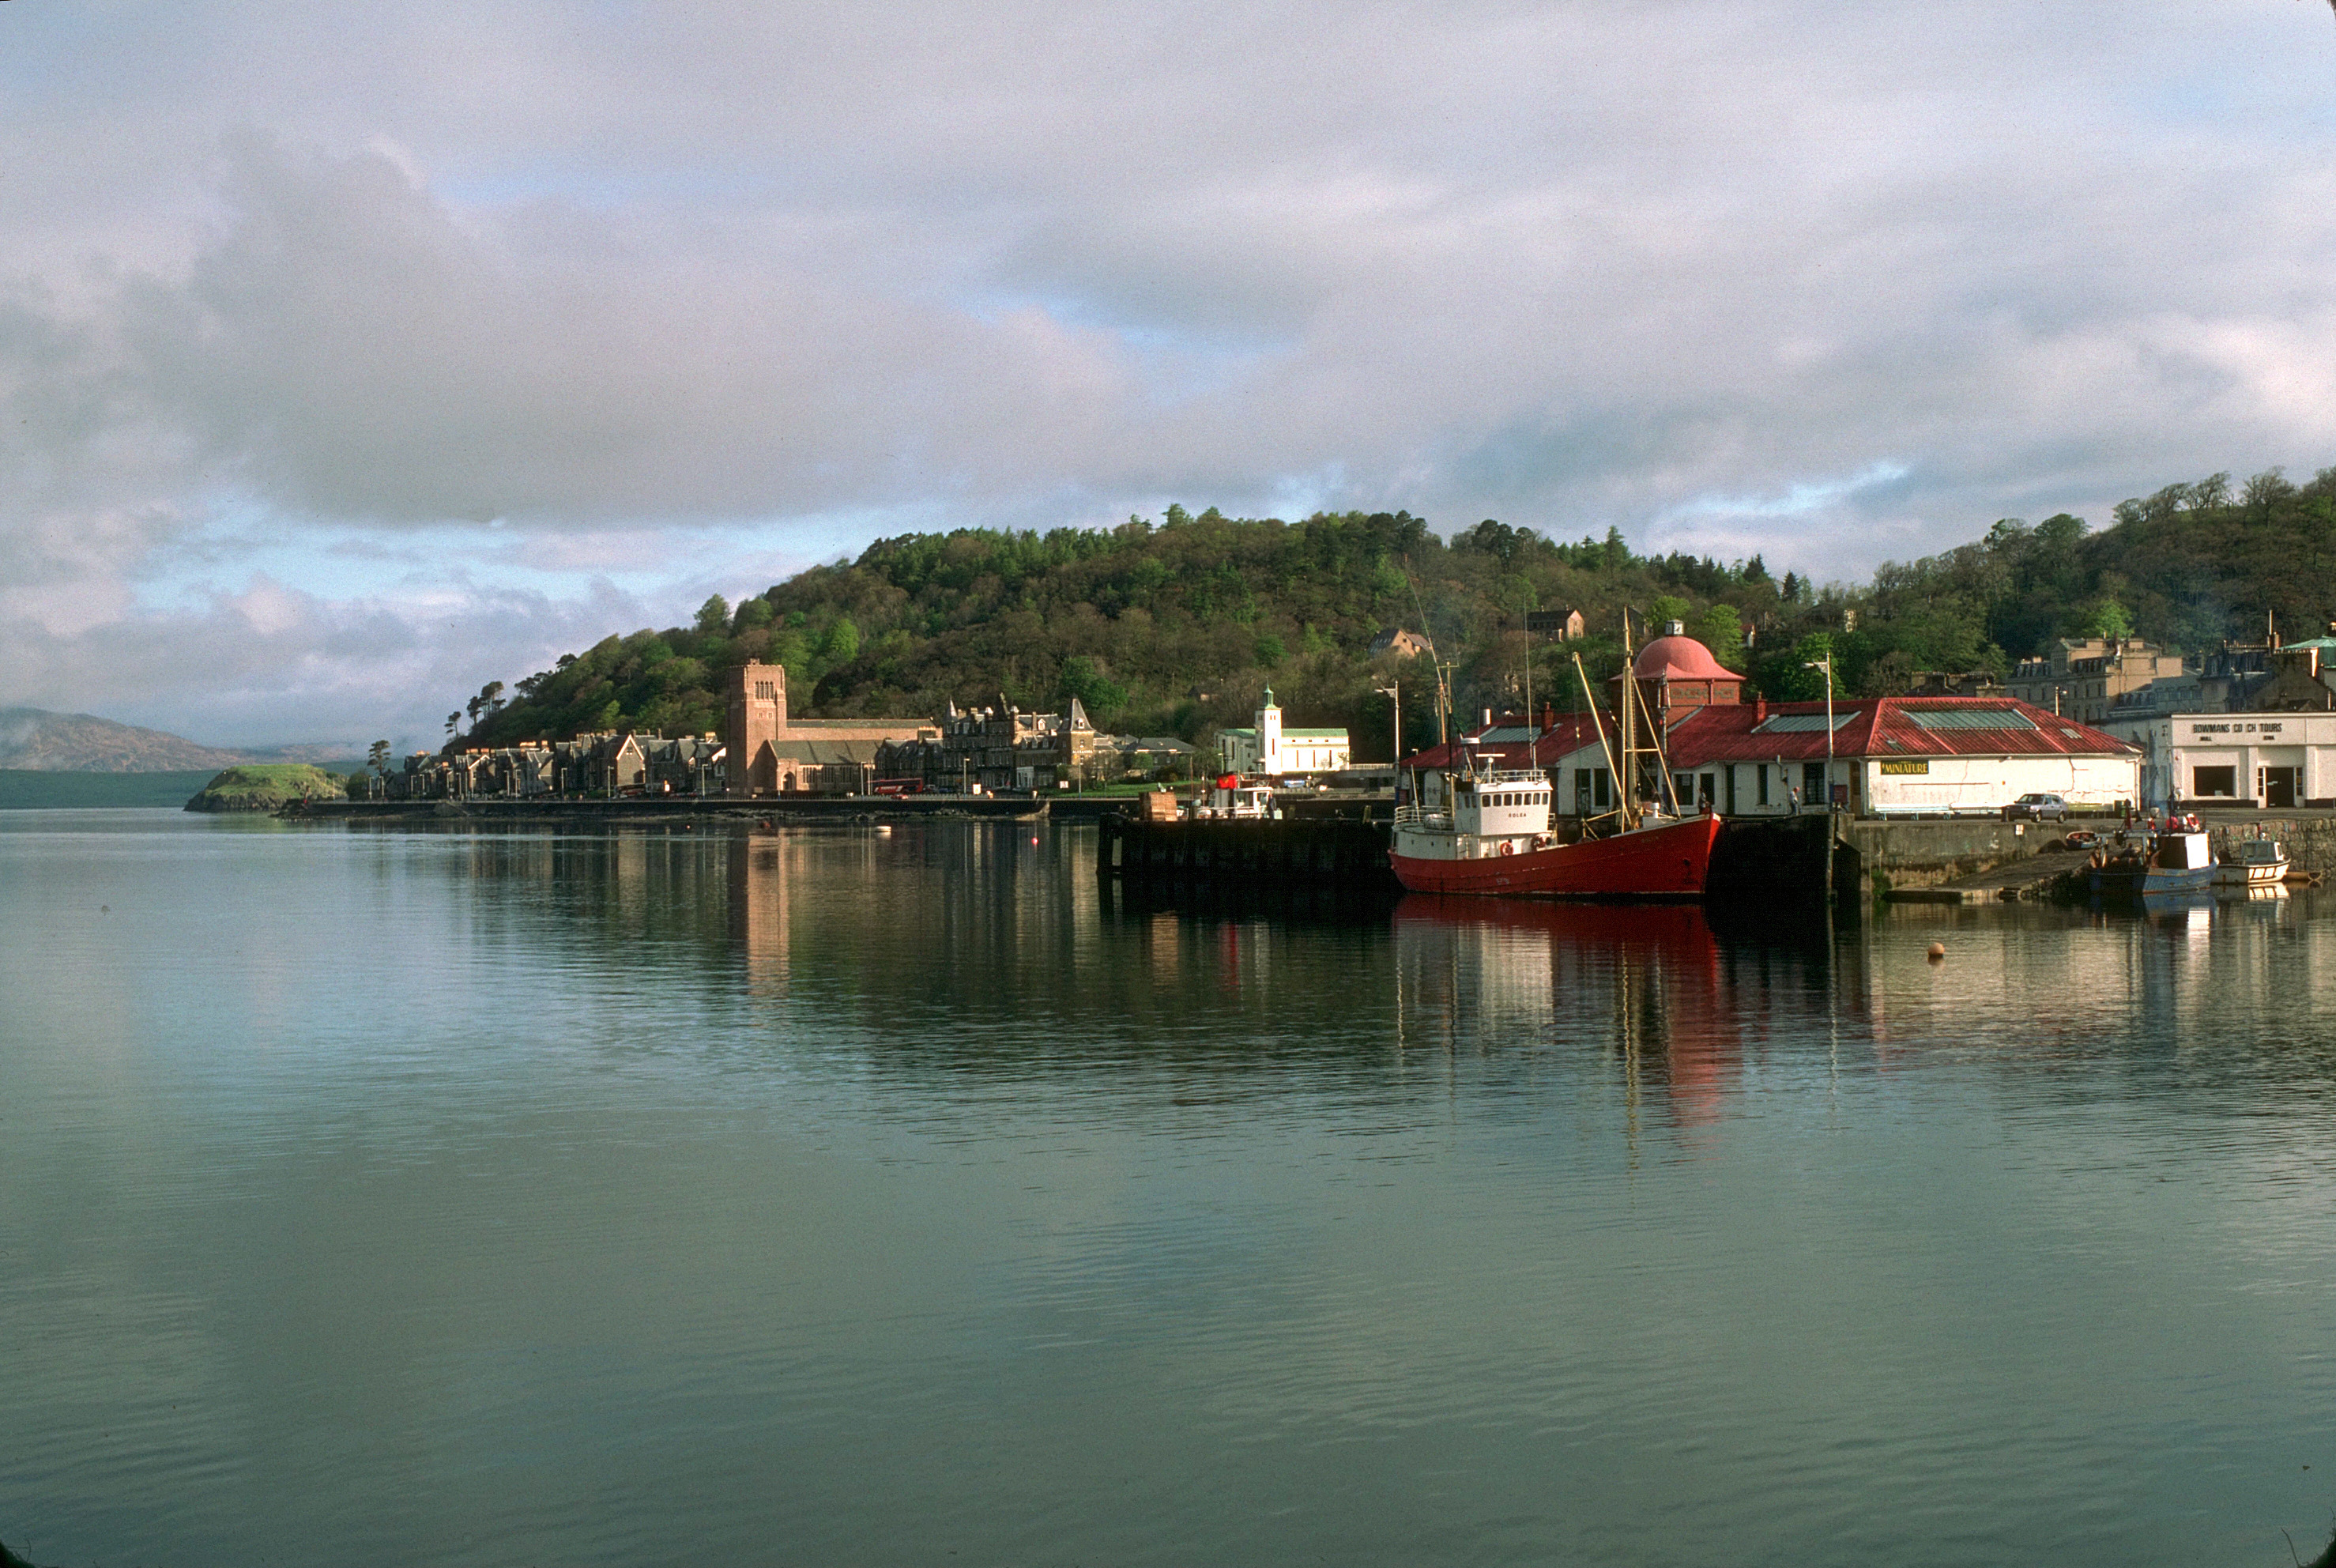 oban from The south HD Wallpaper